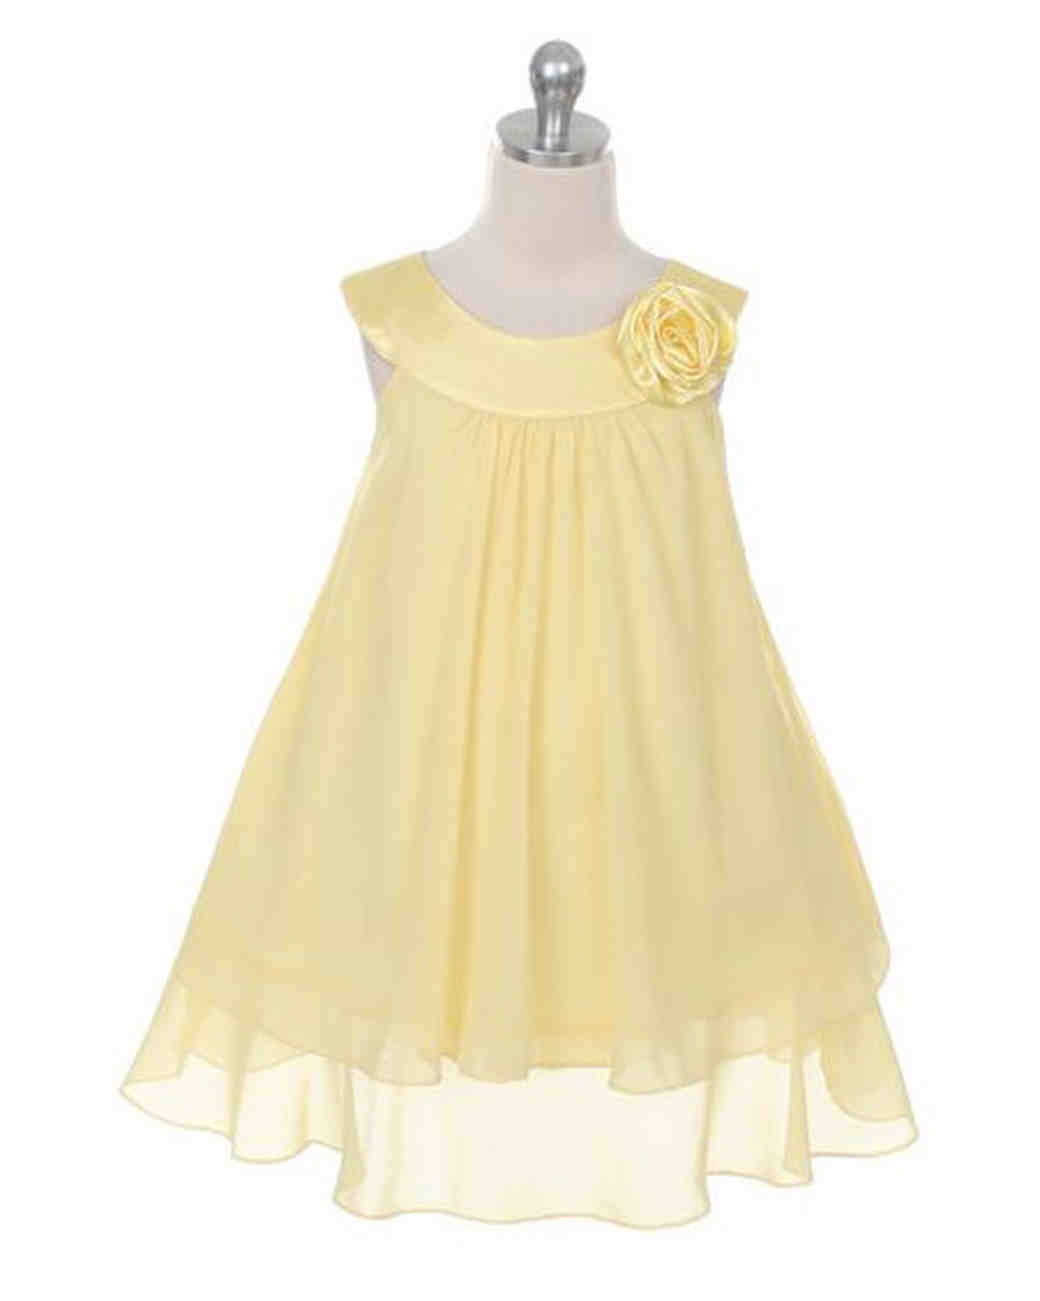 b8faa73125 24 Yellow Flower Girl Dresses That Are Perfect for Any Season ...